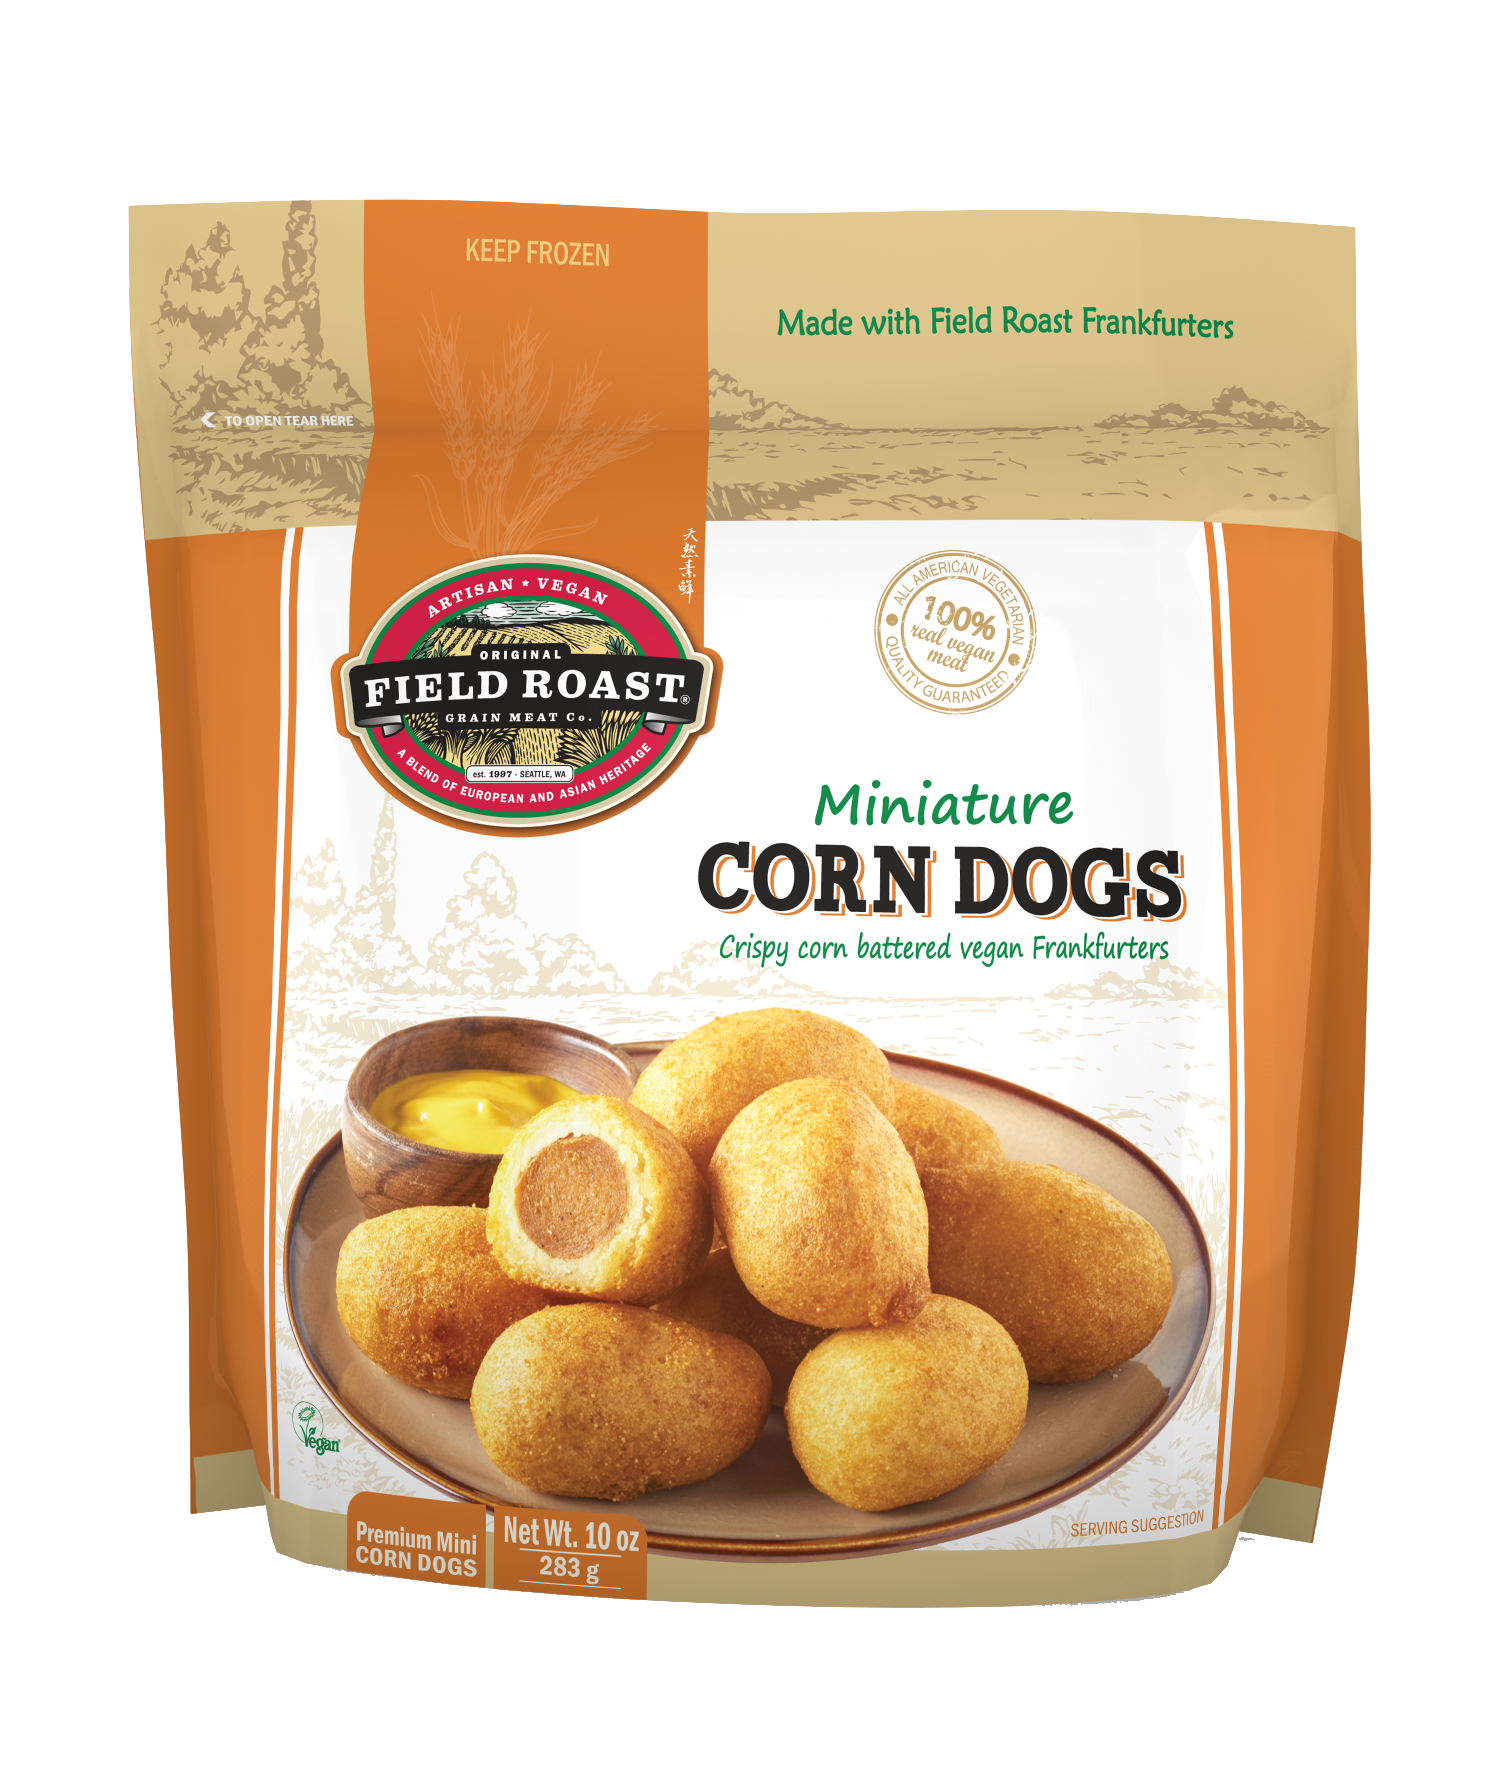 Miniature Corn Dogs